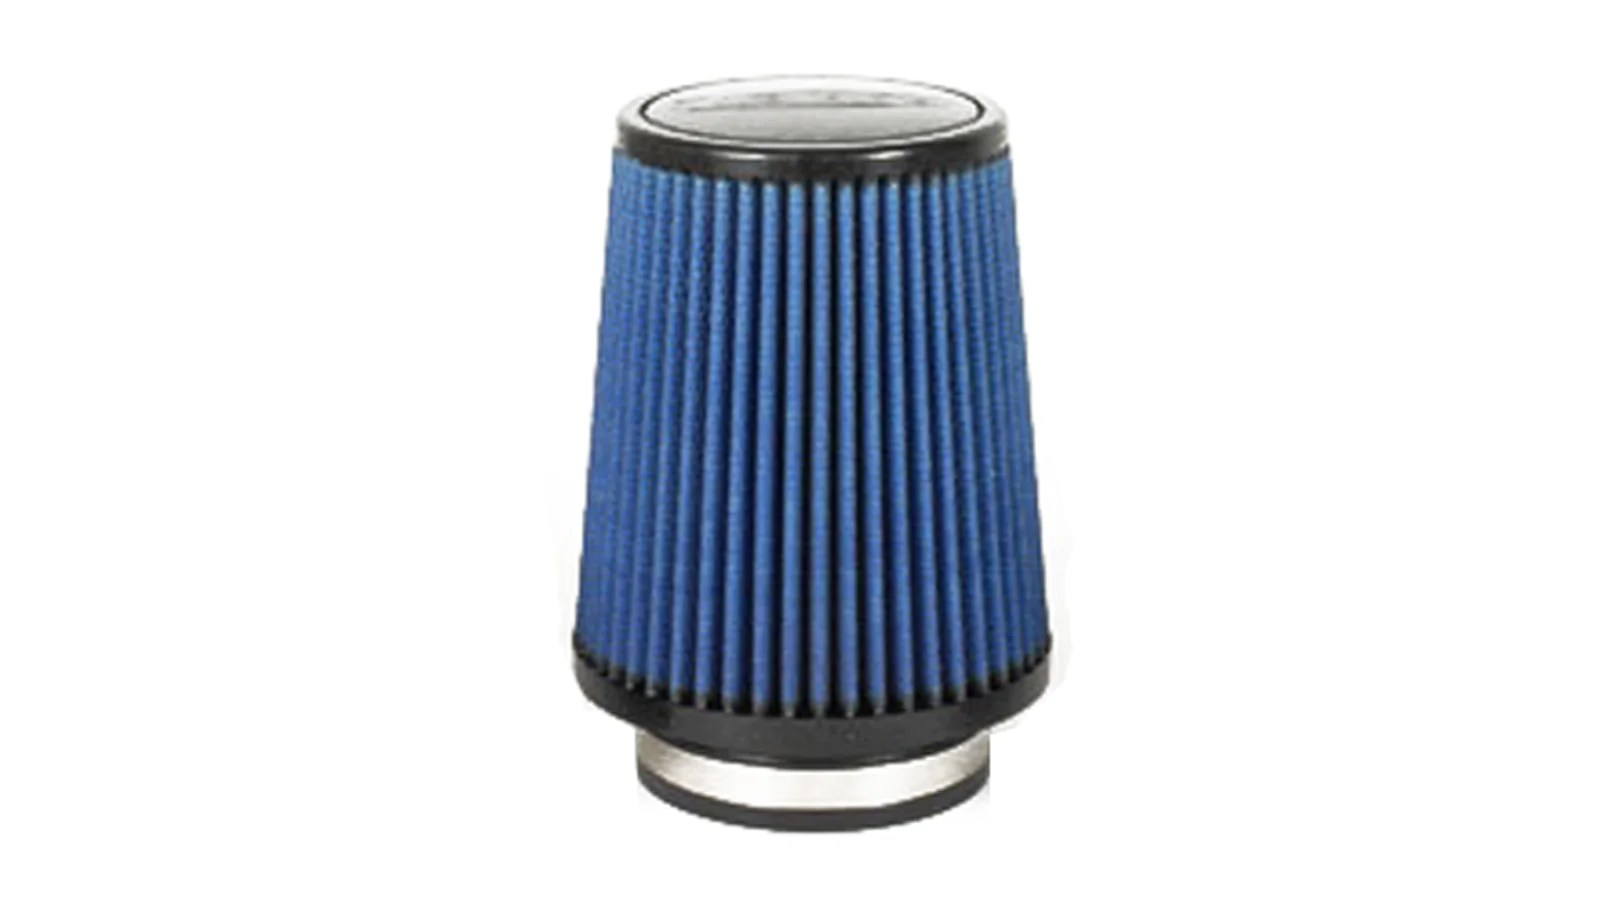 hight resolution of 1999 2000 cadillac escalade oiled filter 5111